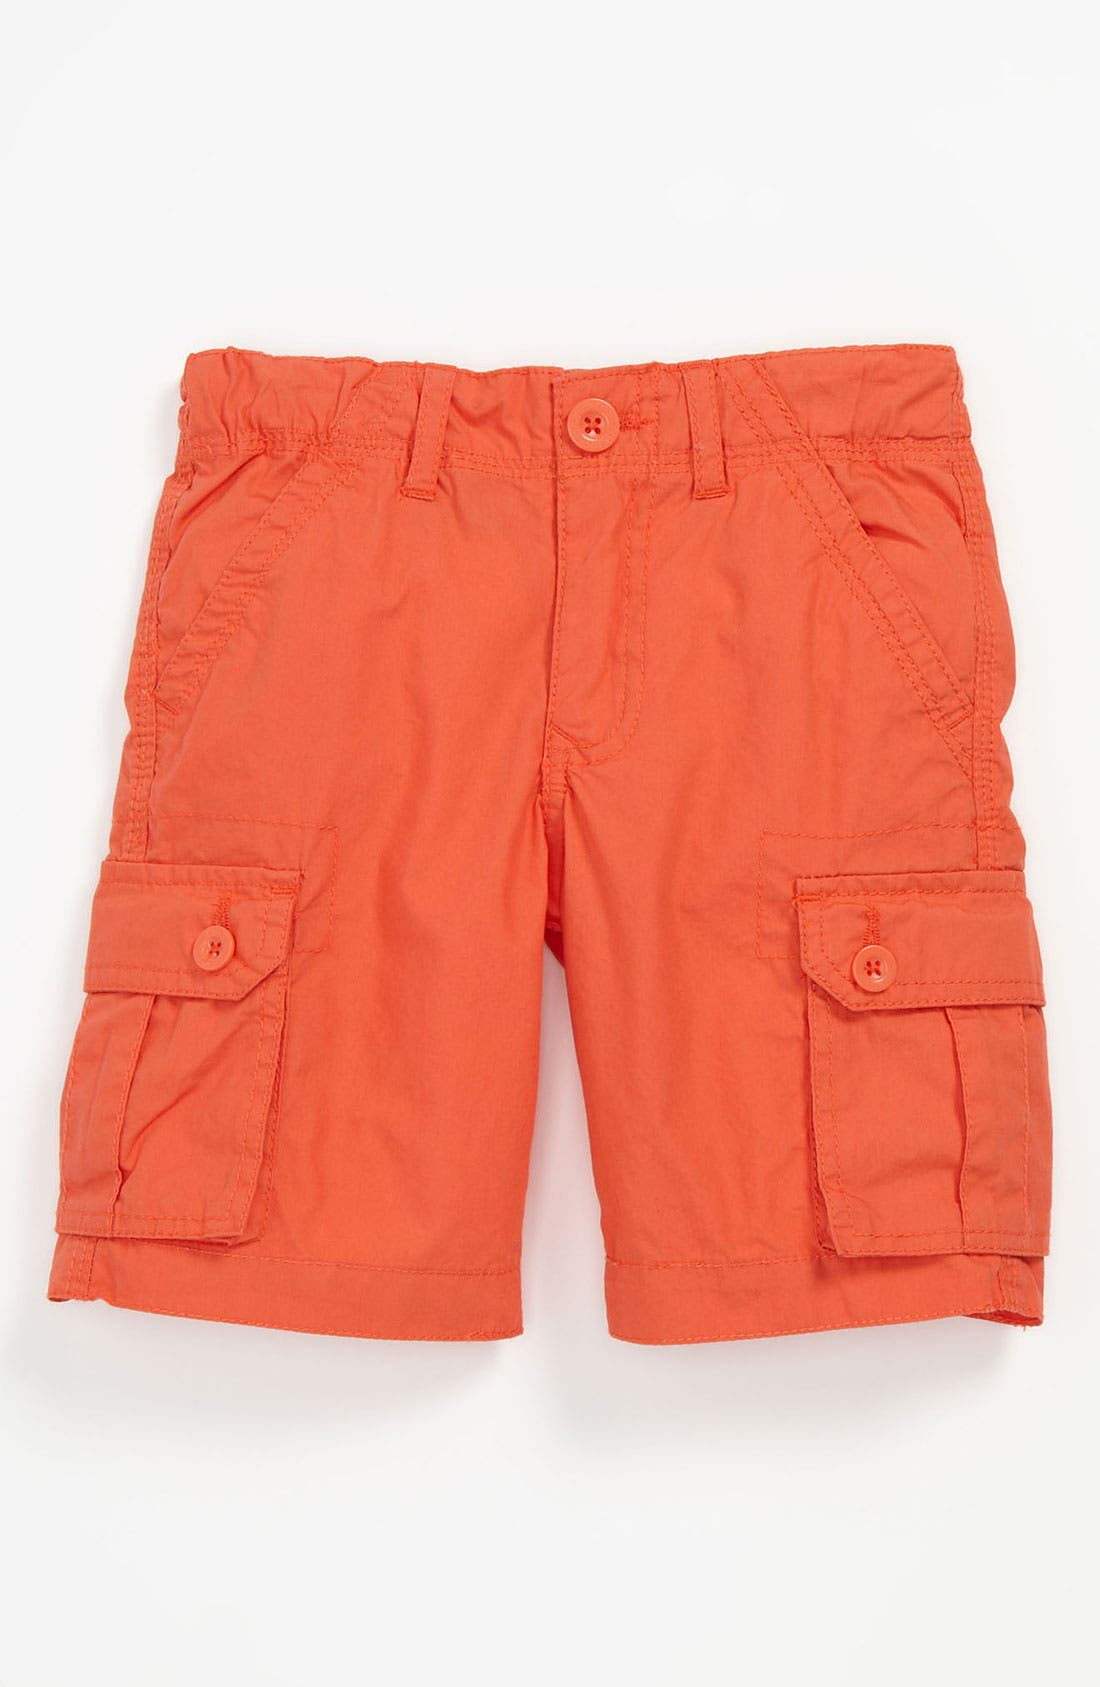 Alternate Image 1 Selected - Pumpkin Patch Cargo Shorts (Baby)